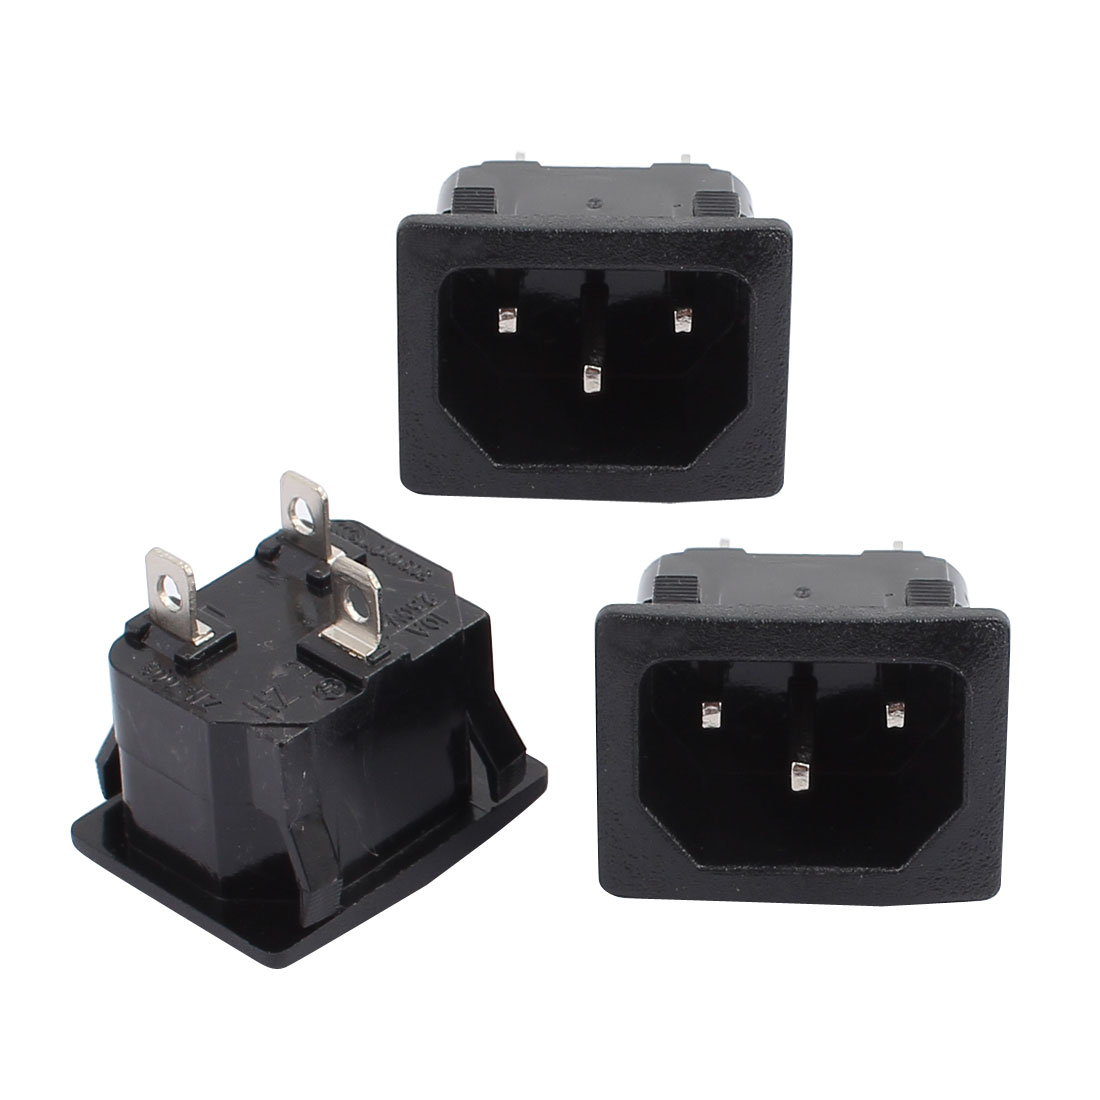 3Pcs 250VAC 150 3 Pin IEC320 C14 Inlet Power Socket Copper Rhodium Black - image 1 of 1